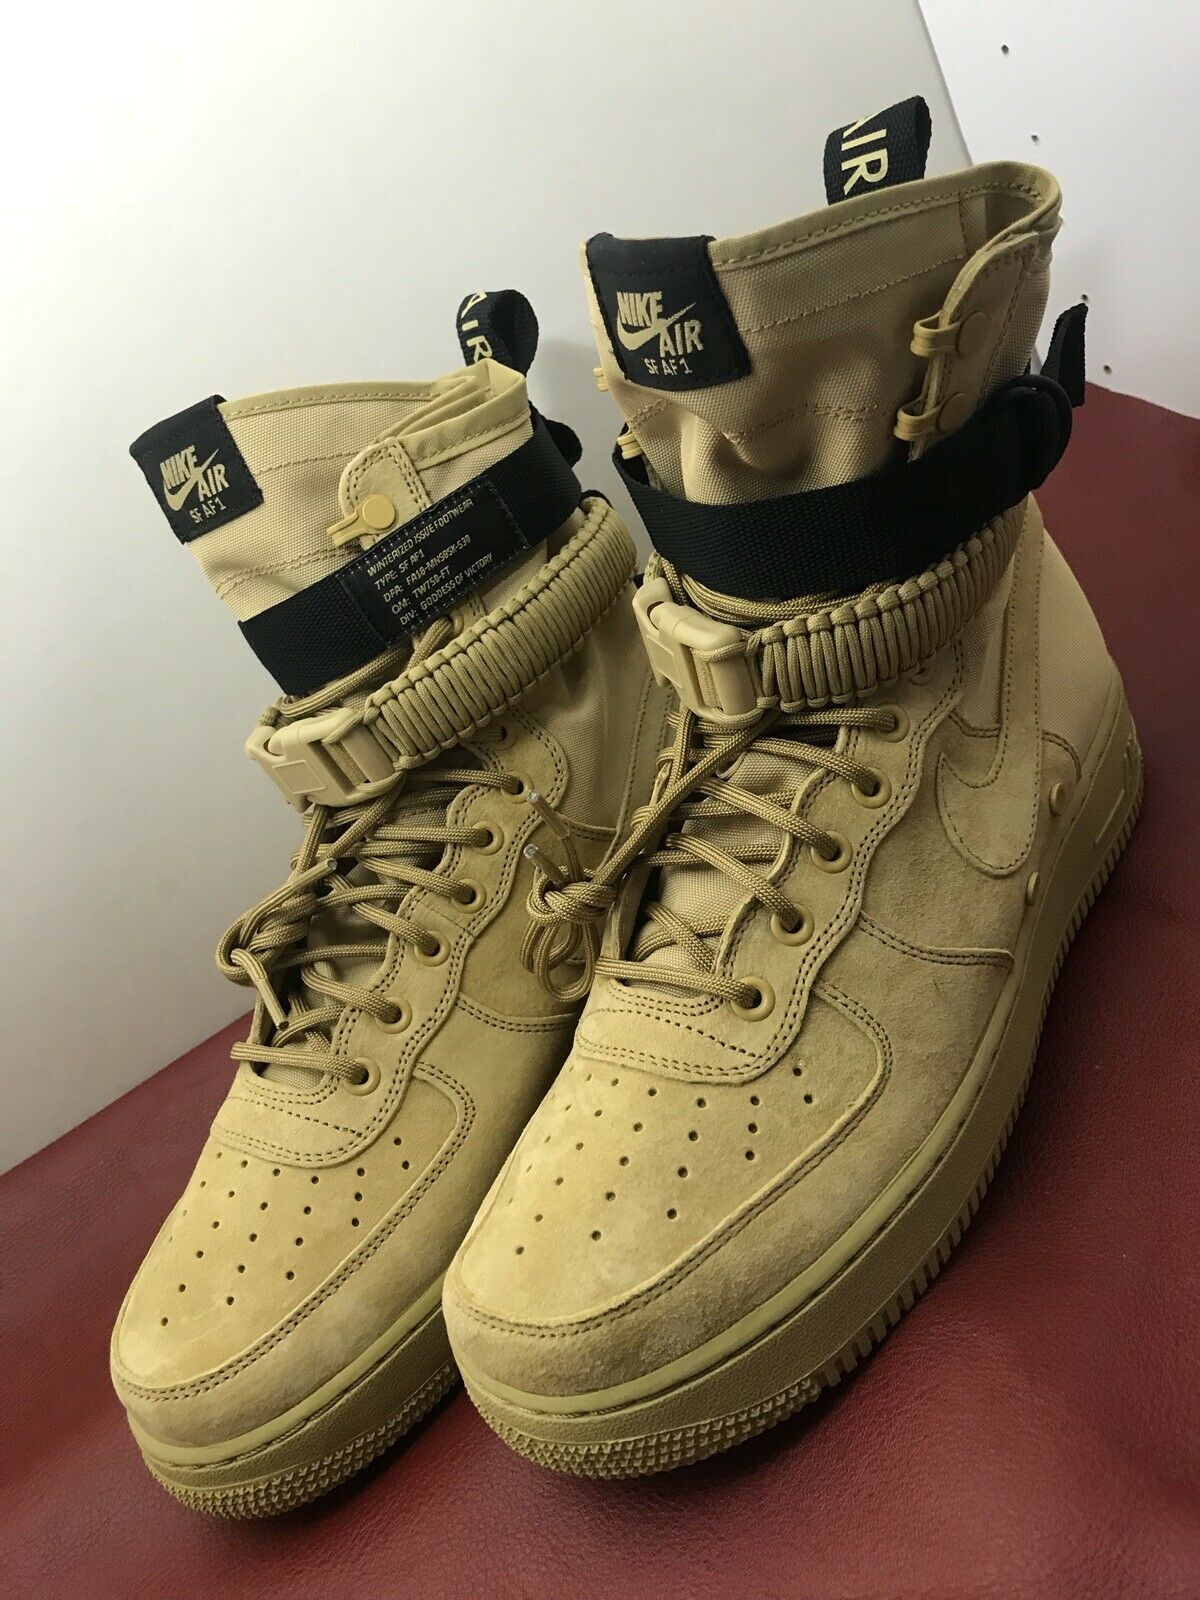 Nike SF AF1 High Air Force 1 Special Field Men's Dimensione 10